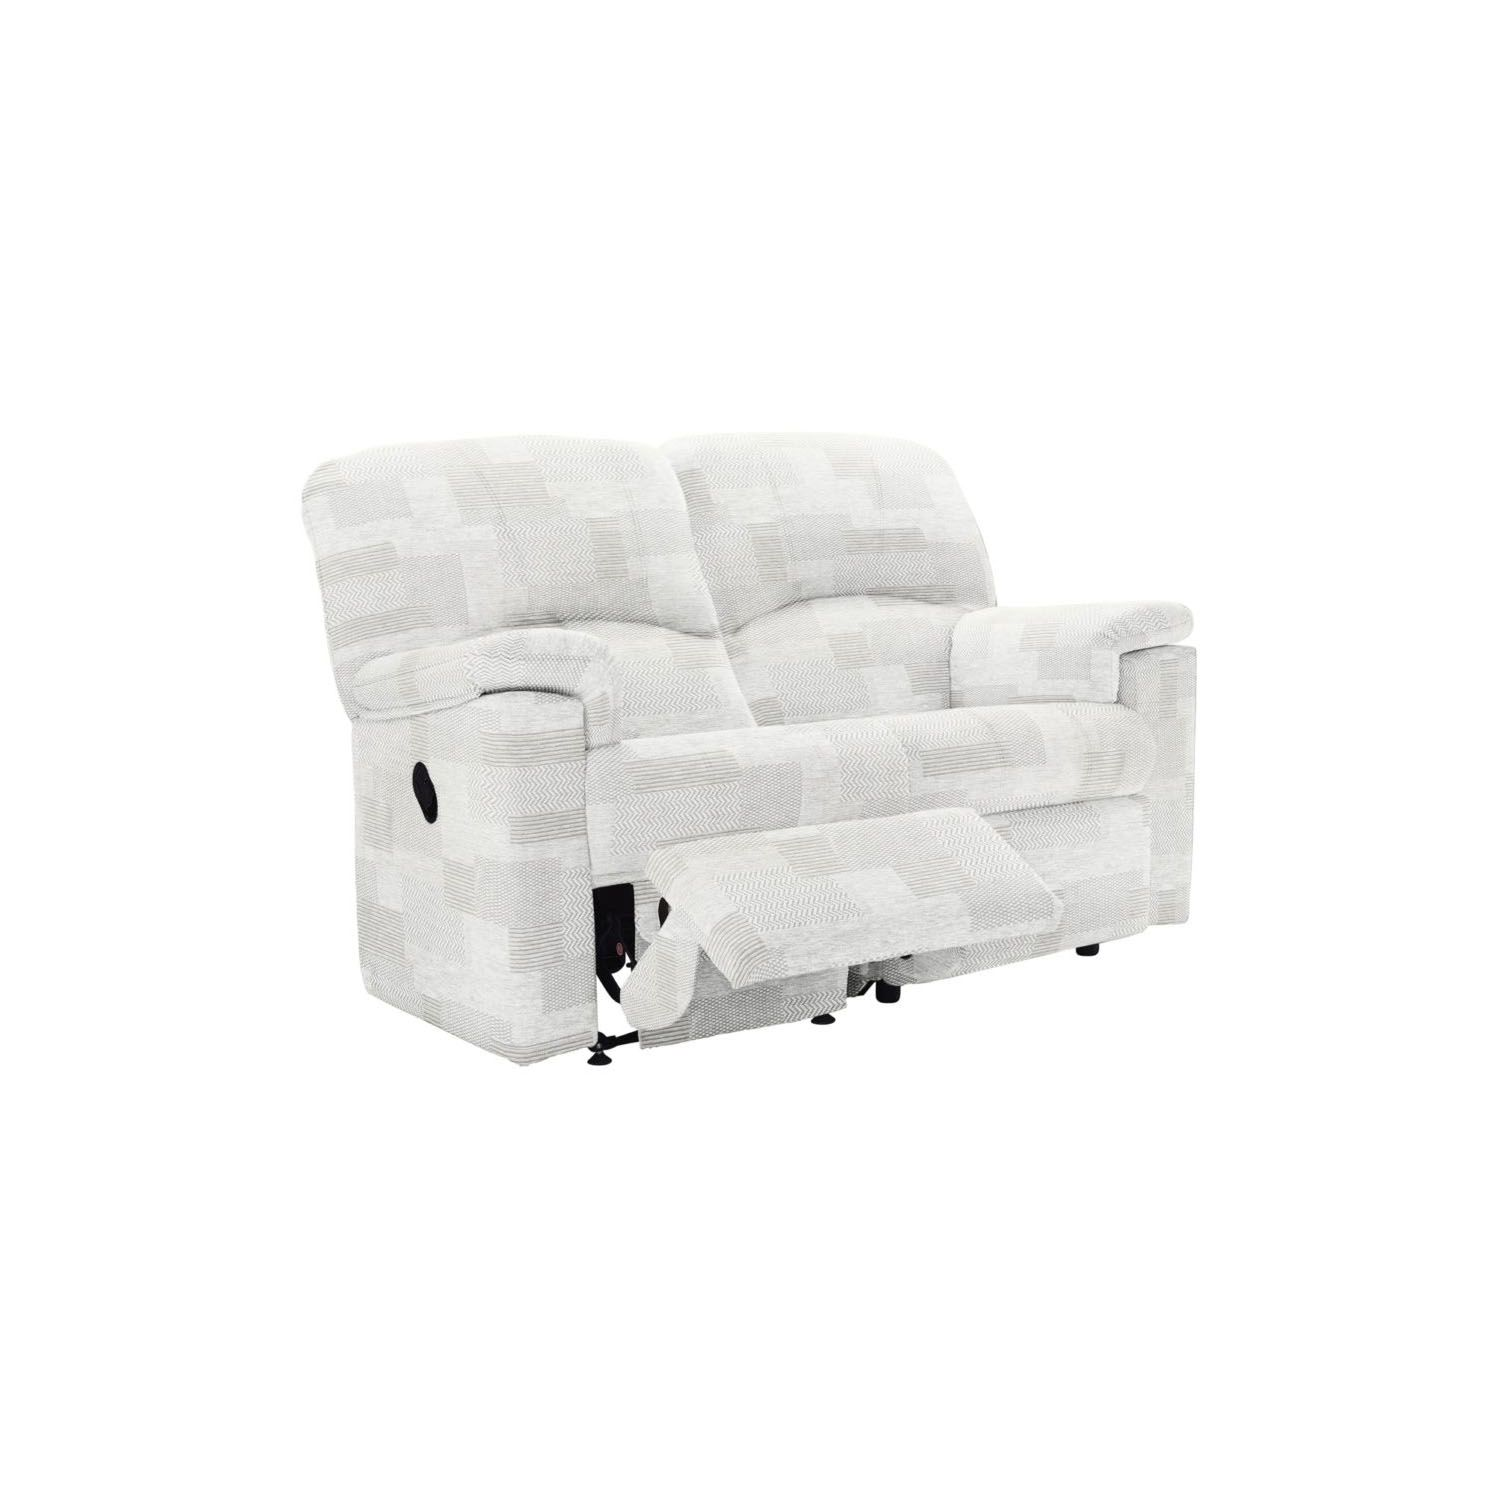 Image of G Plan Chloe 2 Seater Double Power Recliner Fabric Sofa